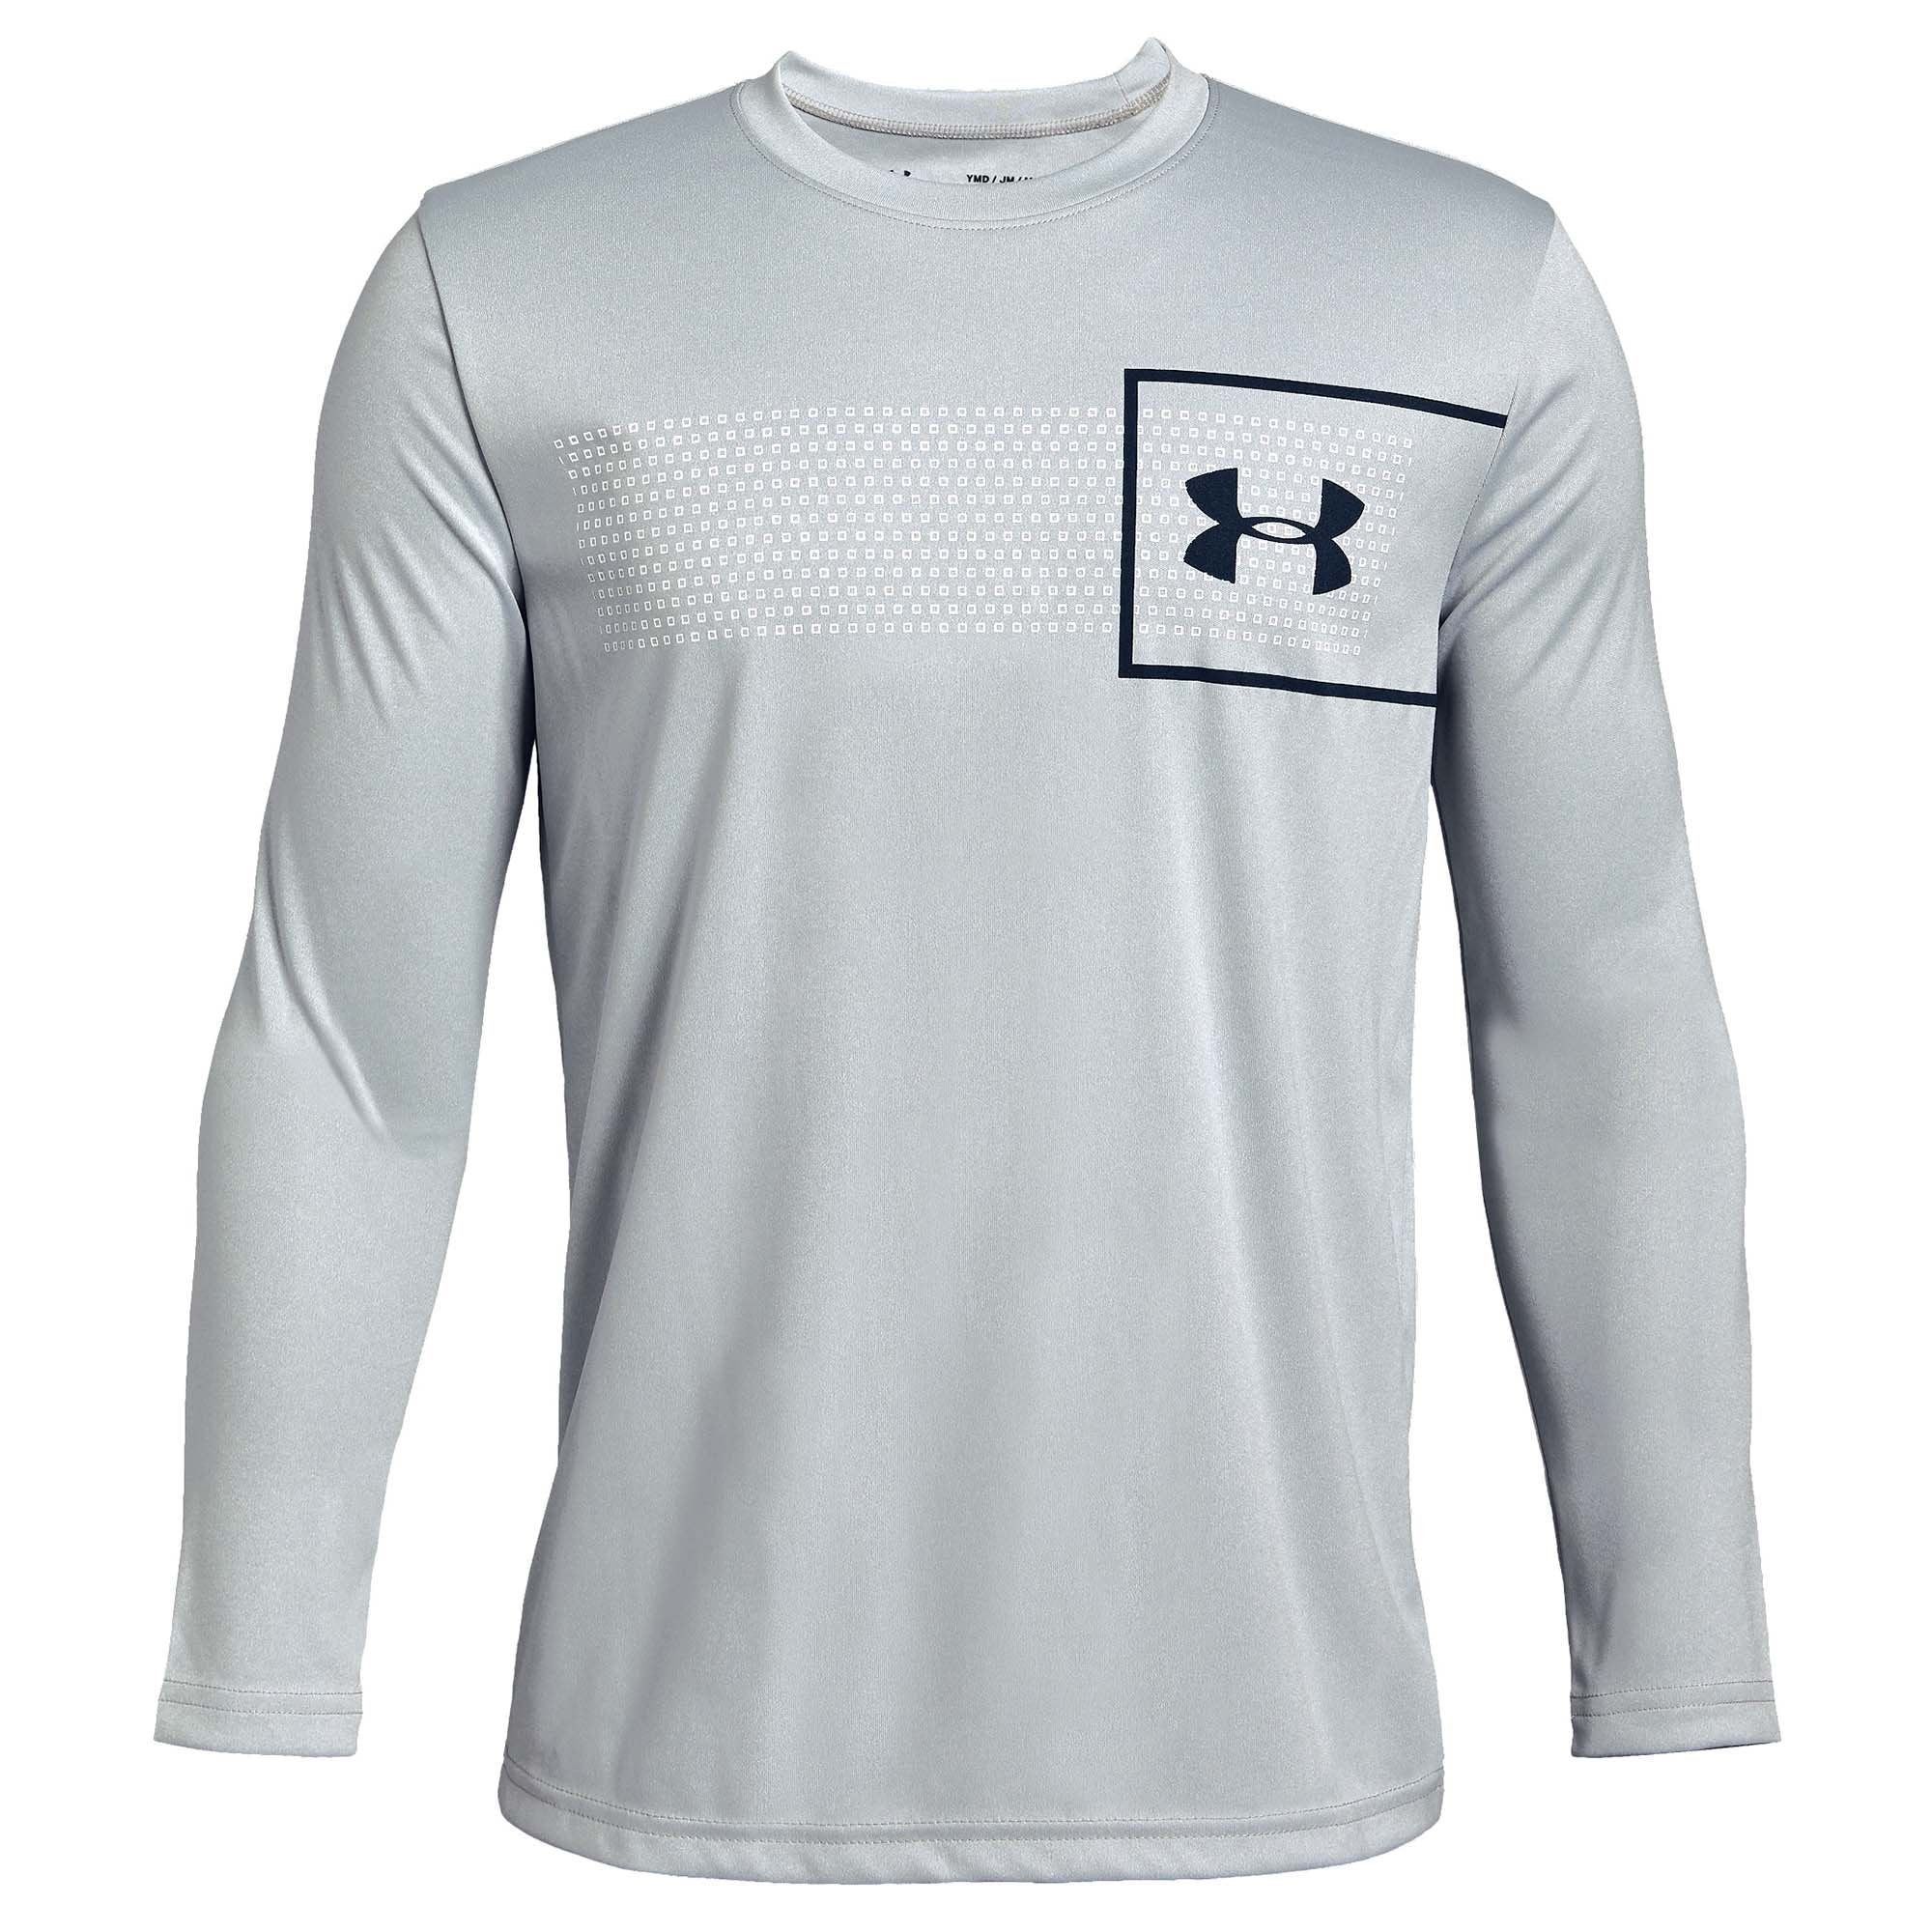 ad75f42a Buy Under Armour Boys Branded Long Sleeve T-shirt Online in Singapore    Royal Sporting House